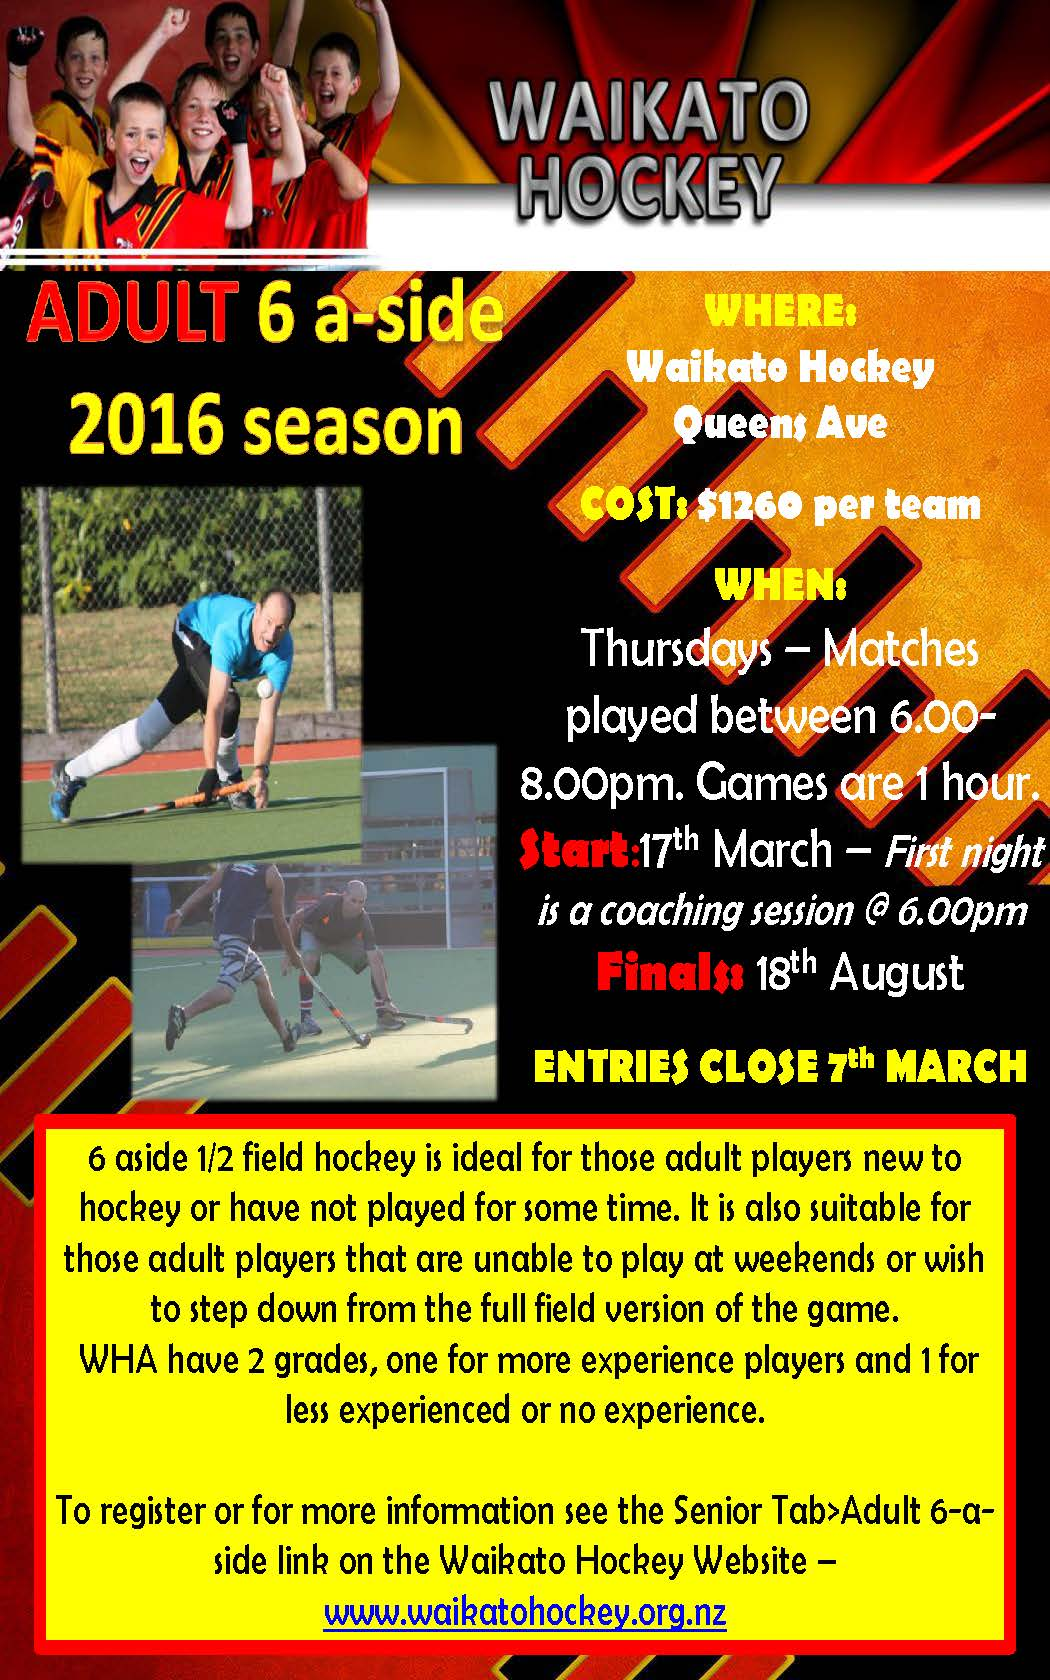 Adult 6-aside 2016 Season